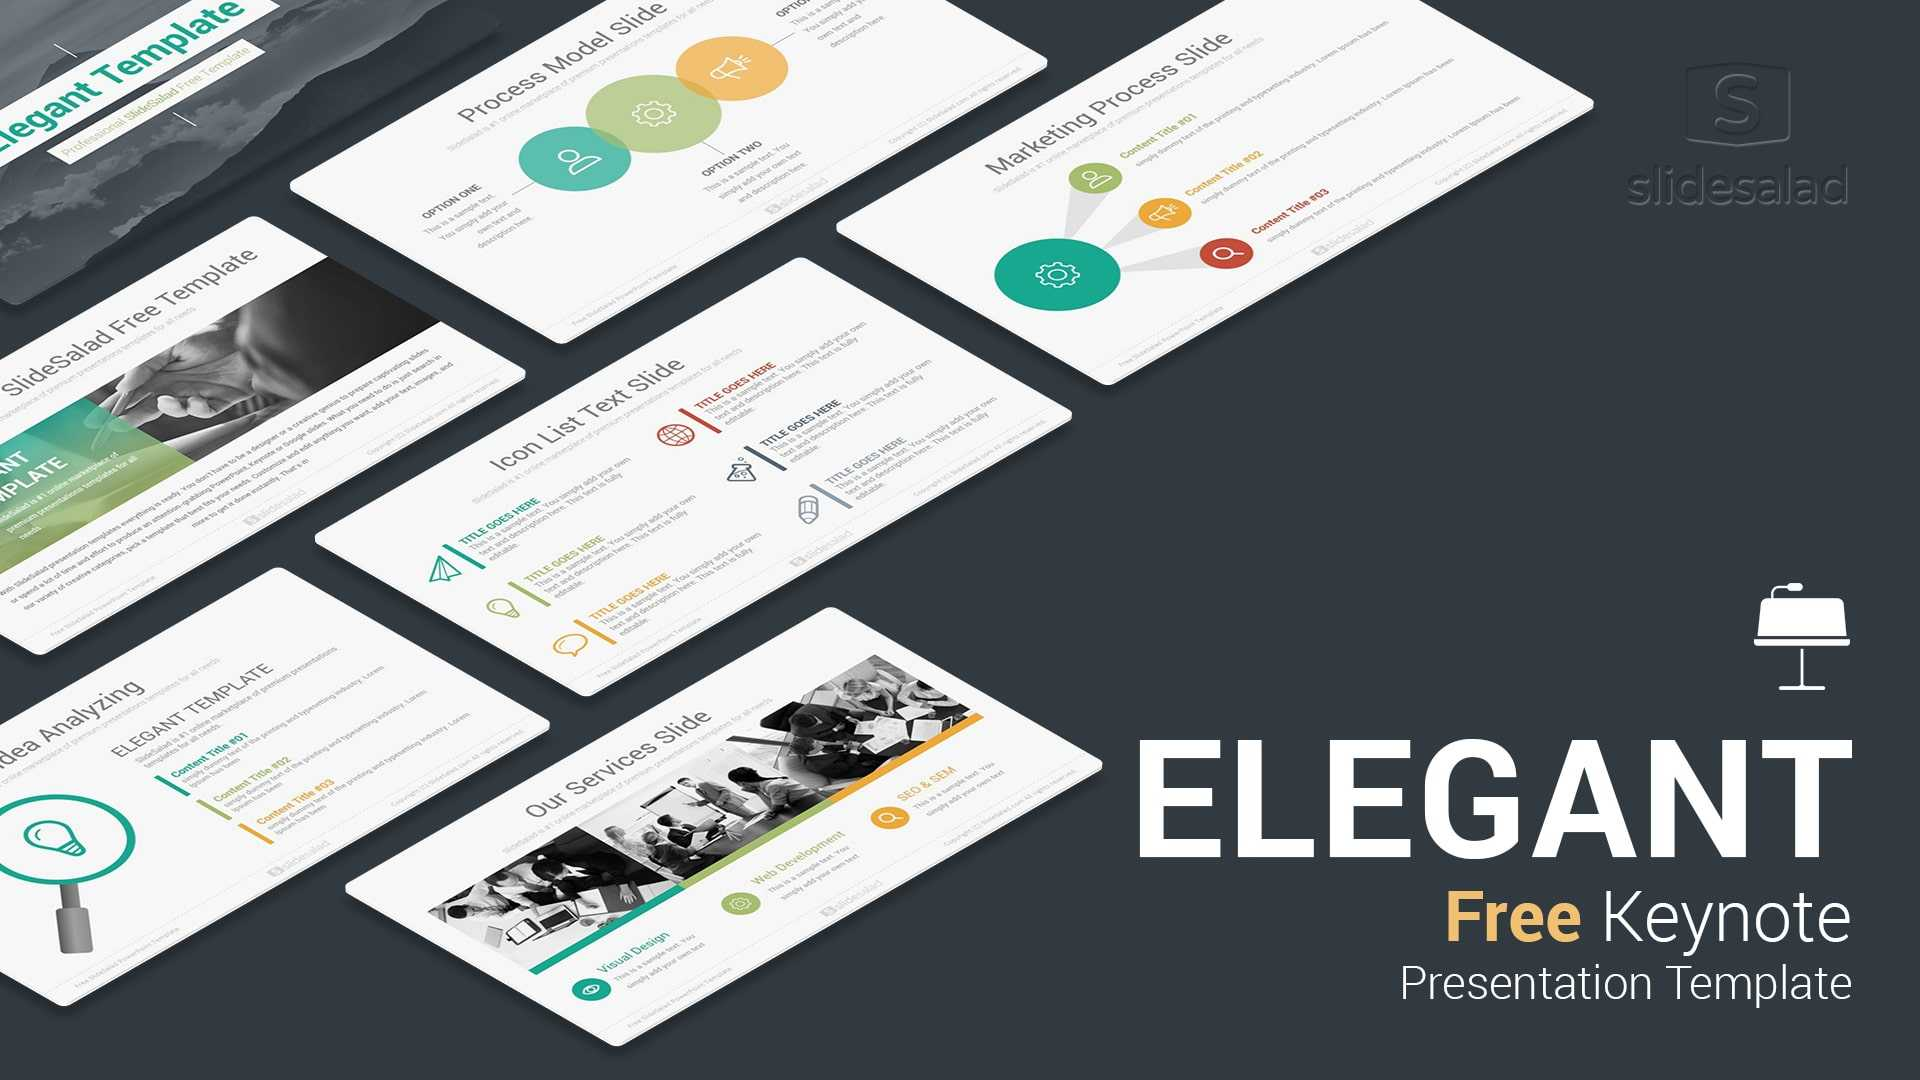 025 Brochure Templates Free Download For Ppt Elegant Keynote Within Keynote Brochure Template